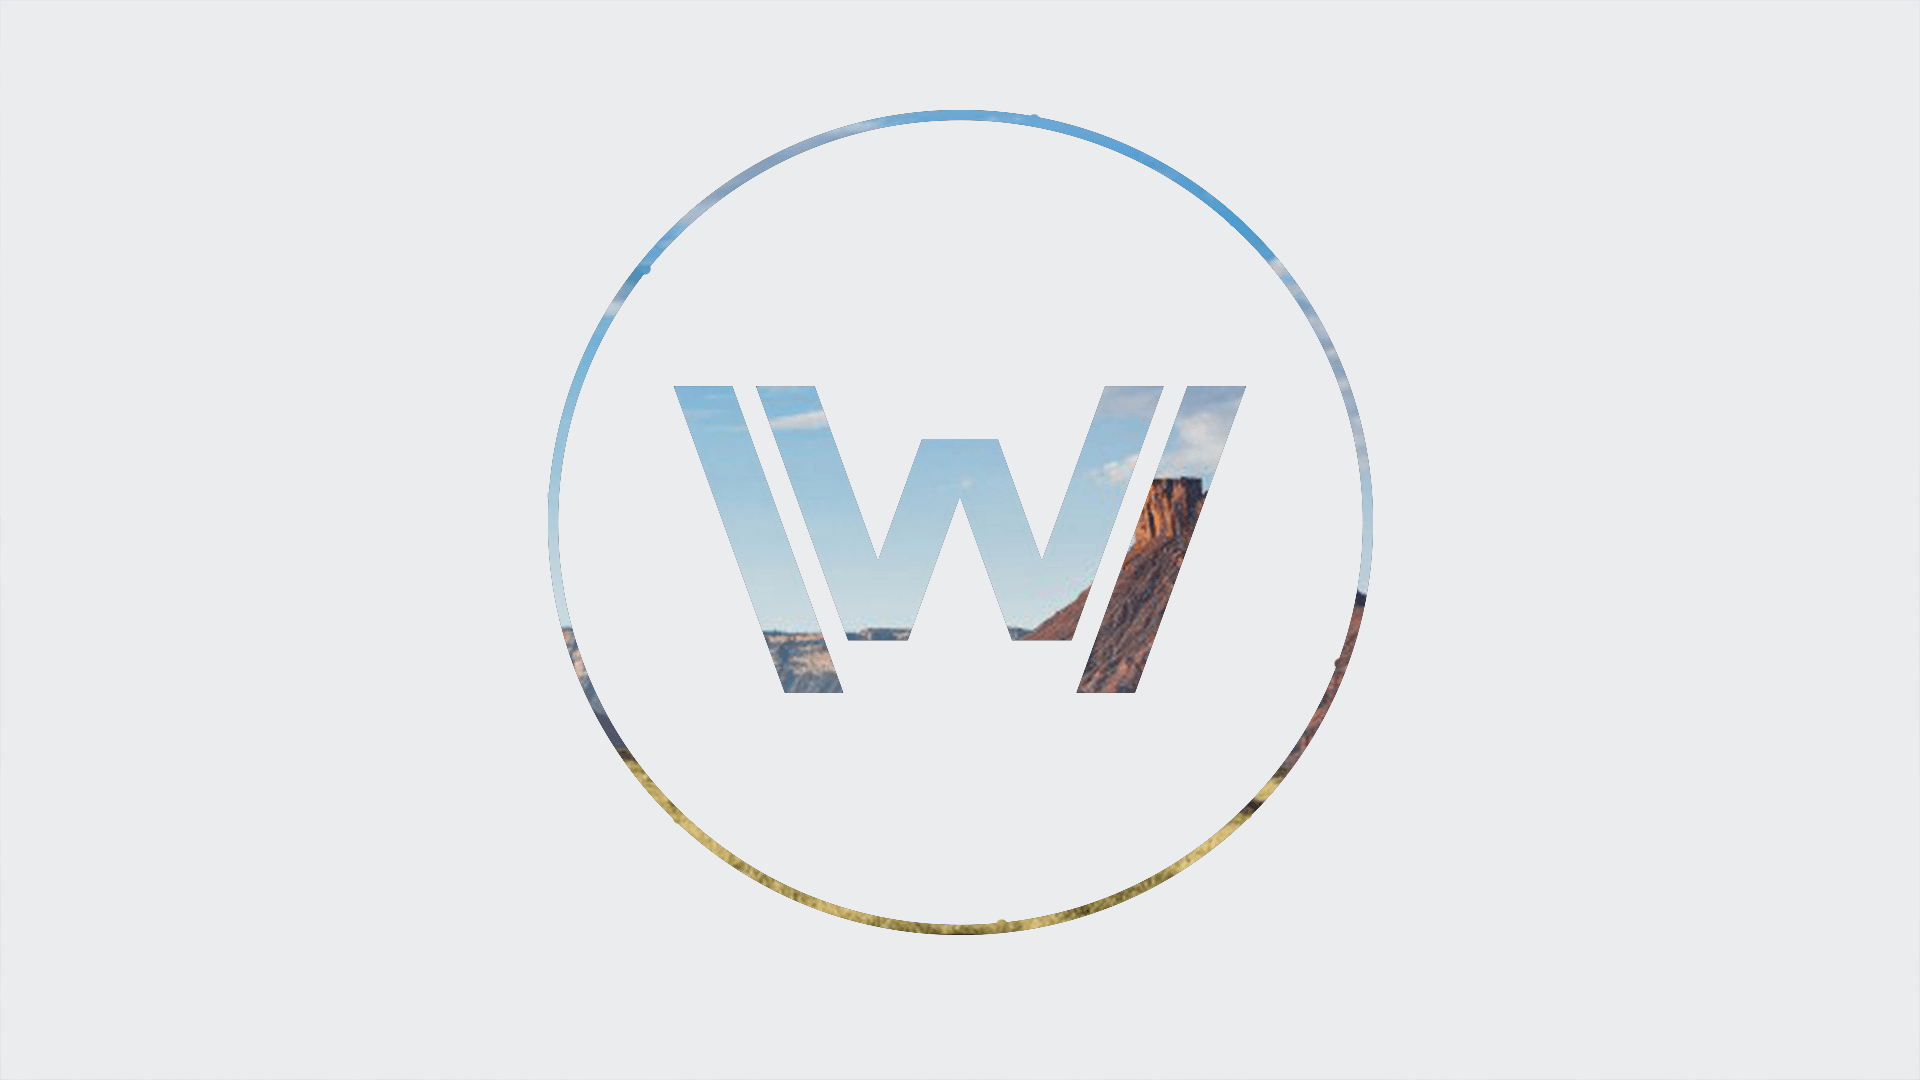 I thought I would share some Westworld wallpapers I made!